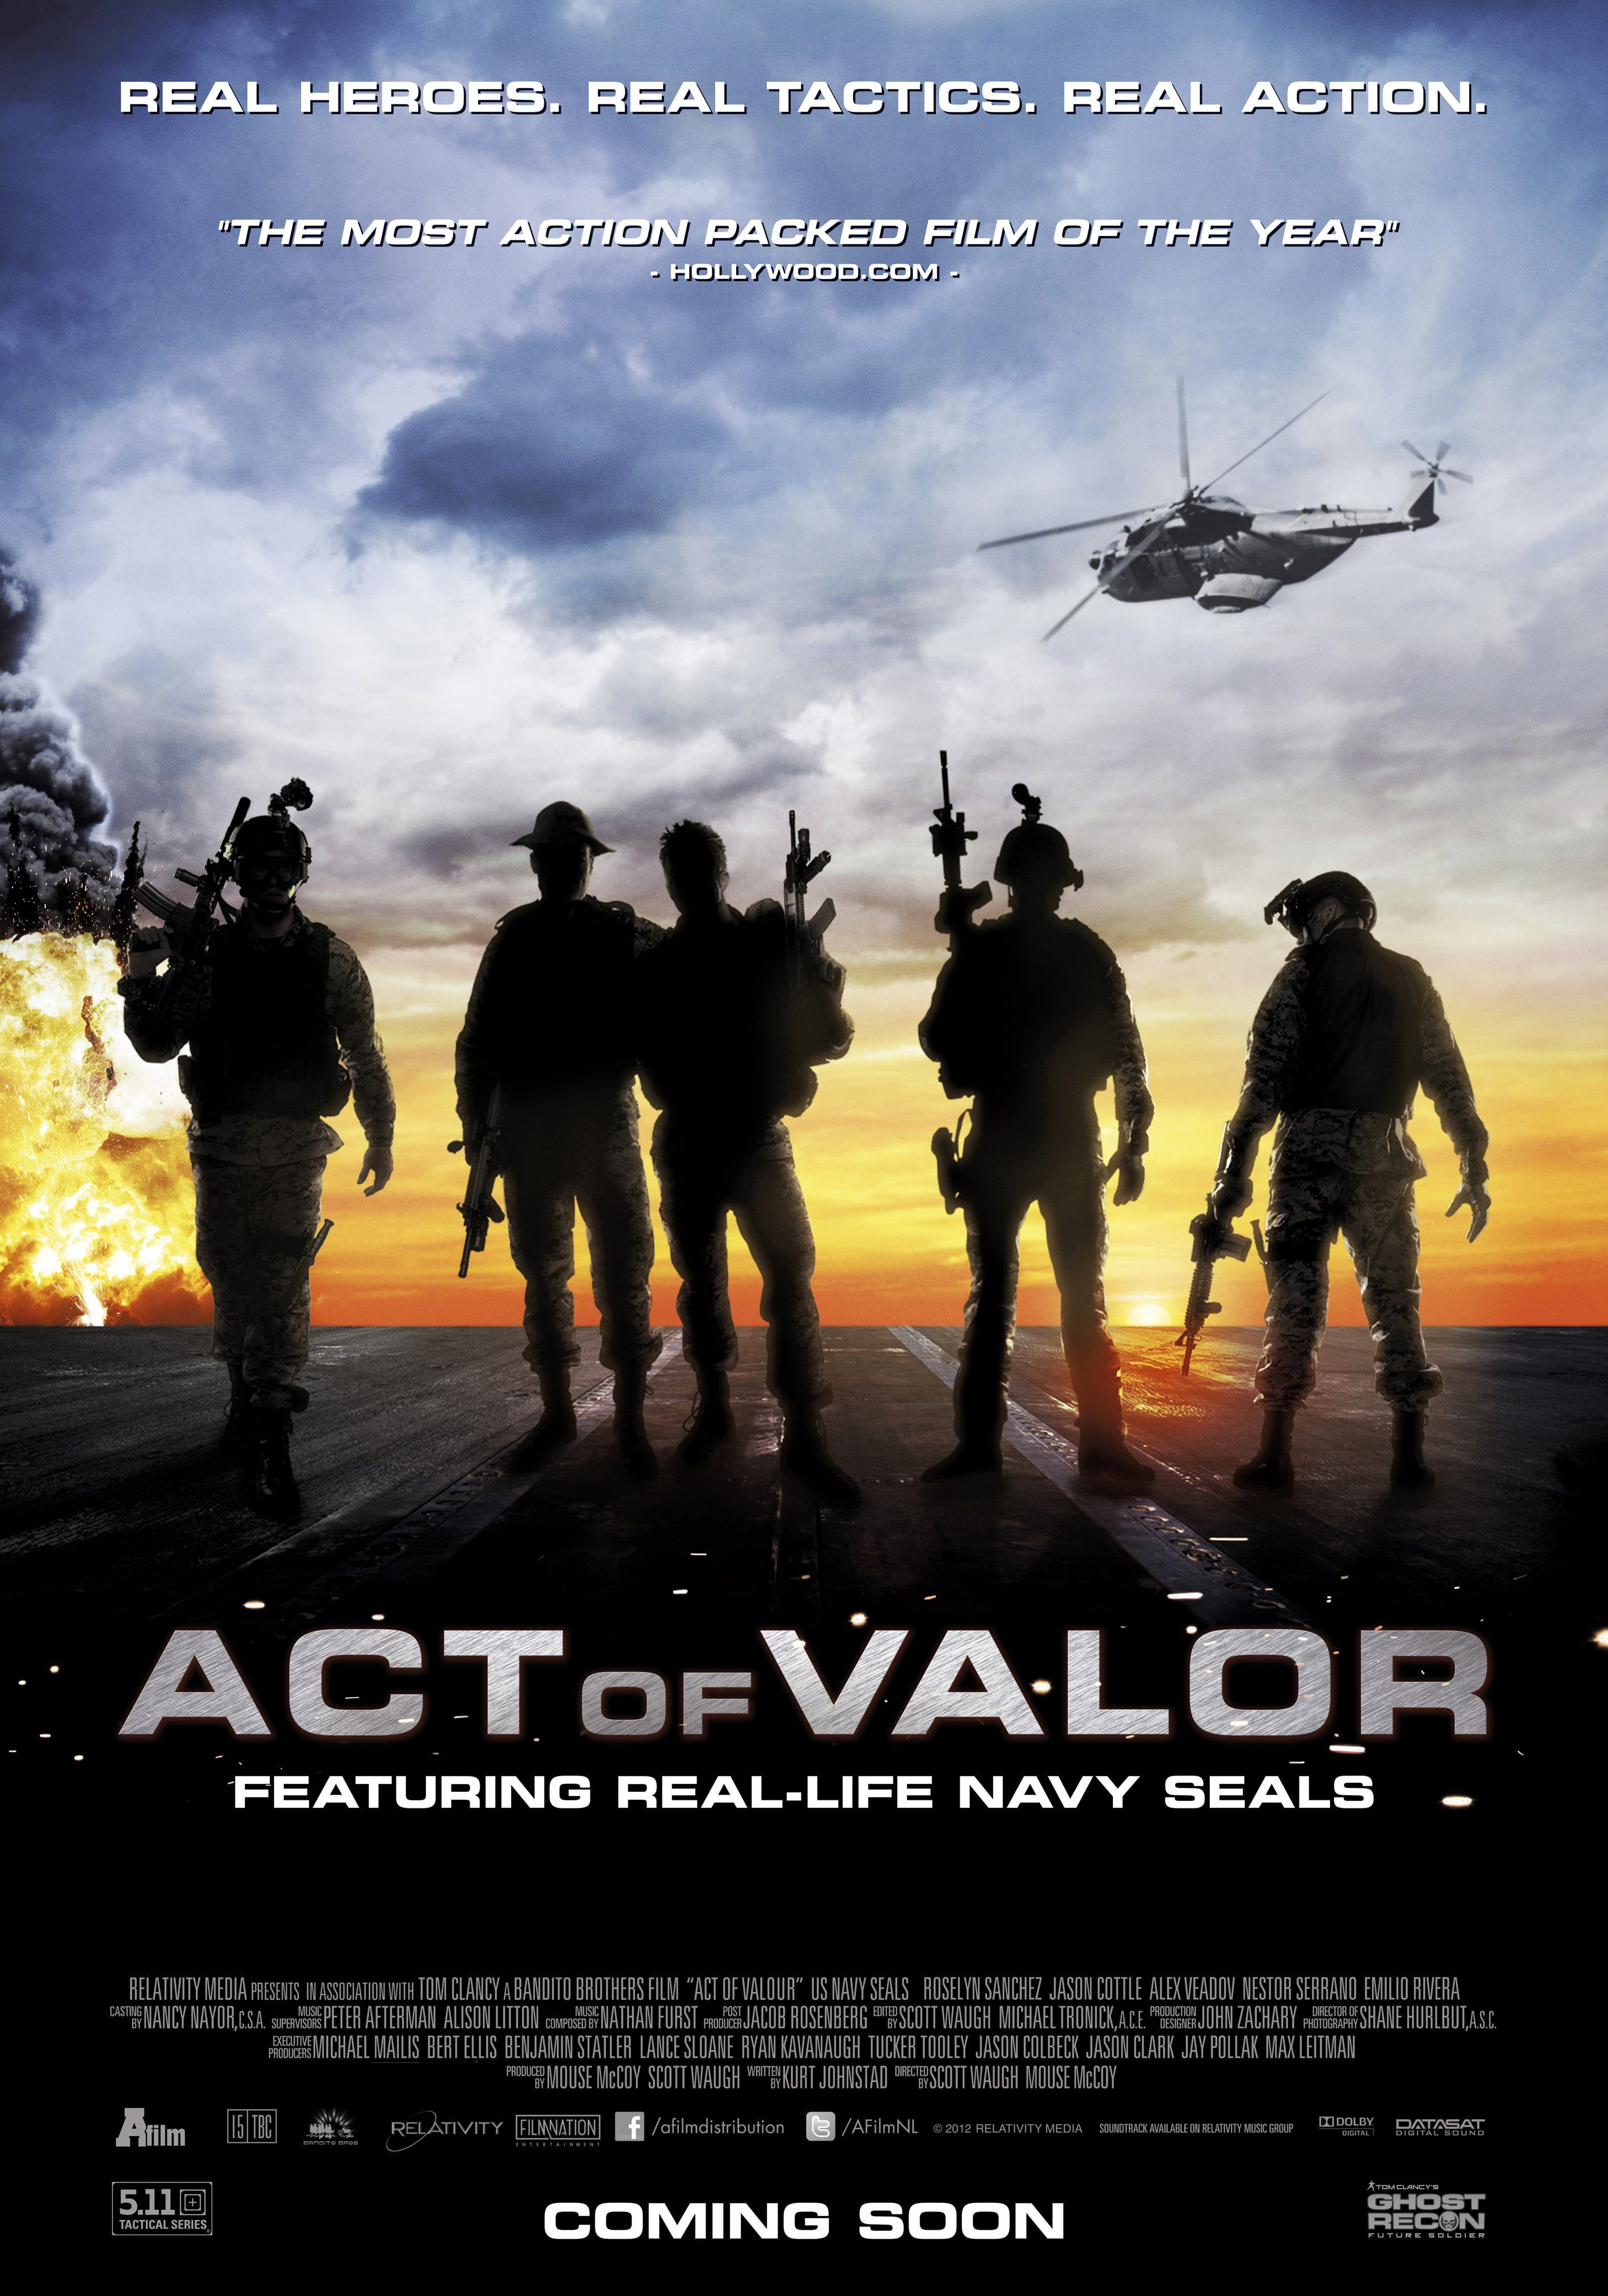 Act of Valor - Film (2012) streaming VF gratuit complet